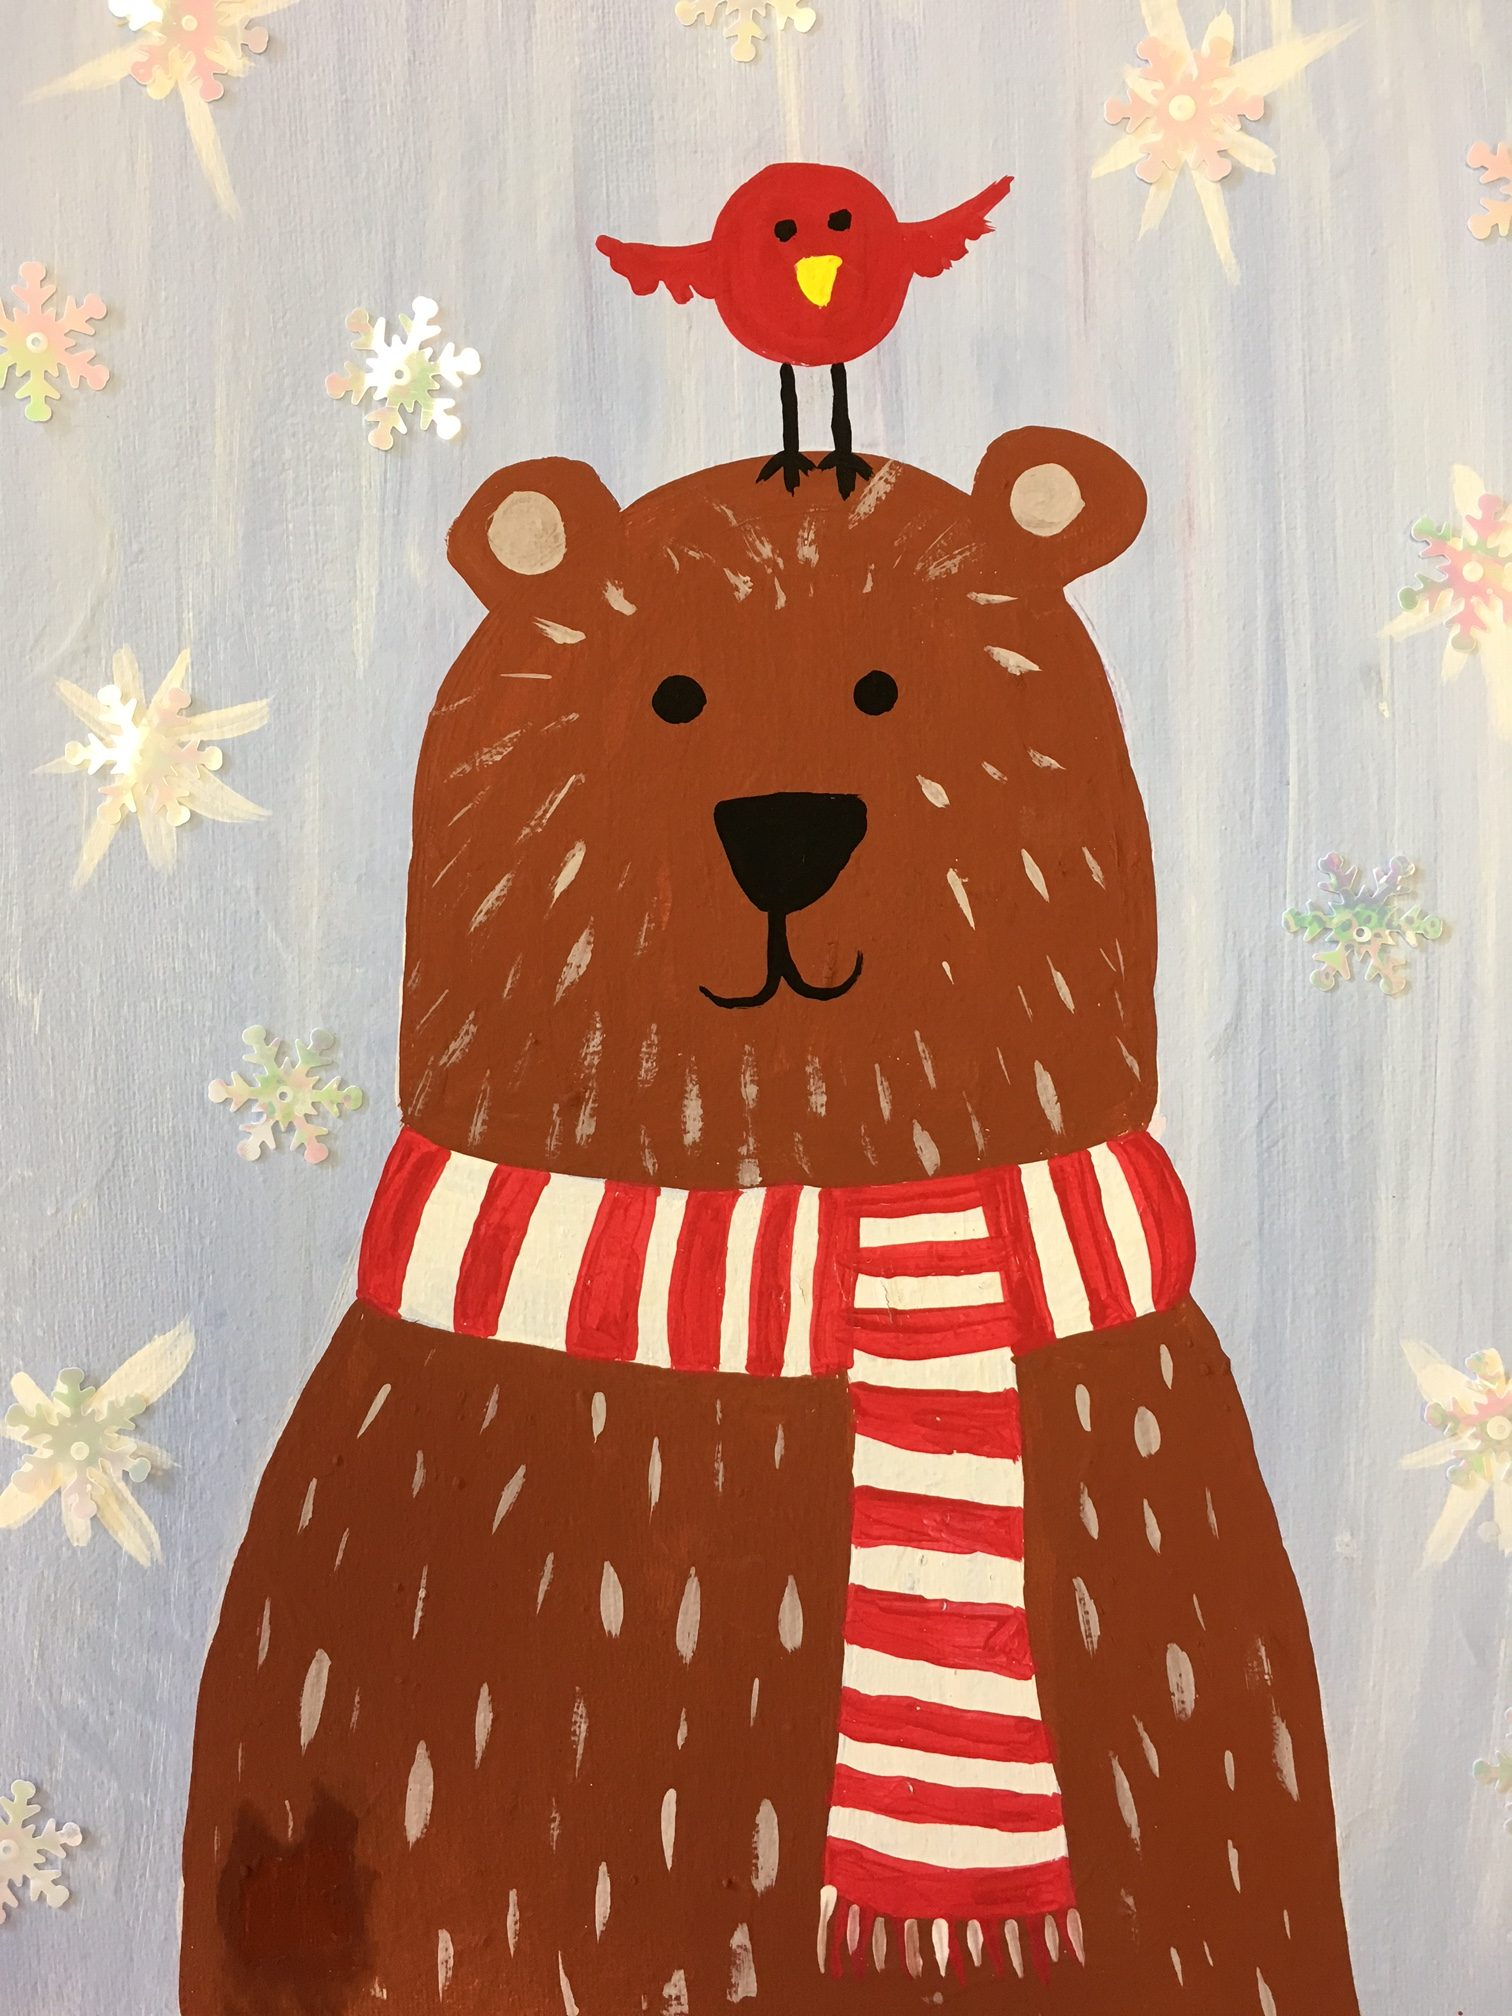 Image: Winter Bear Paint by The Studio Art School http://thestudiomchenry.com